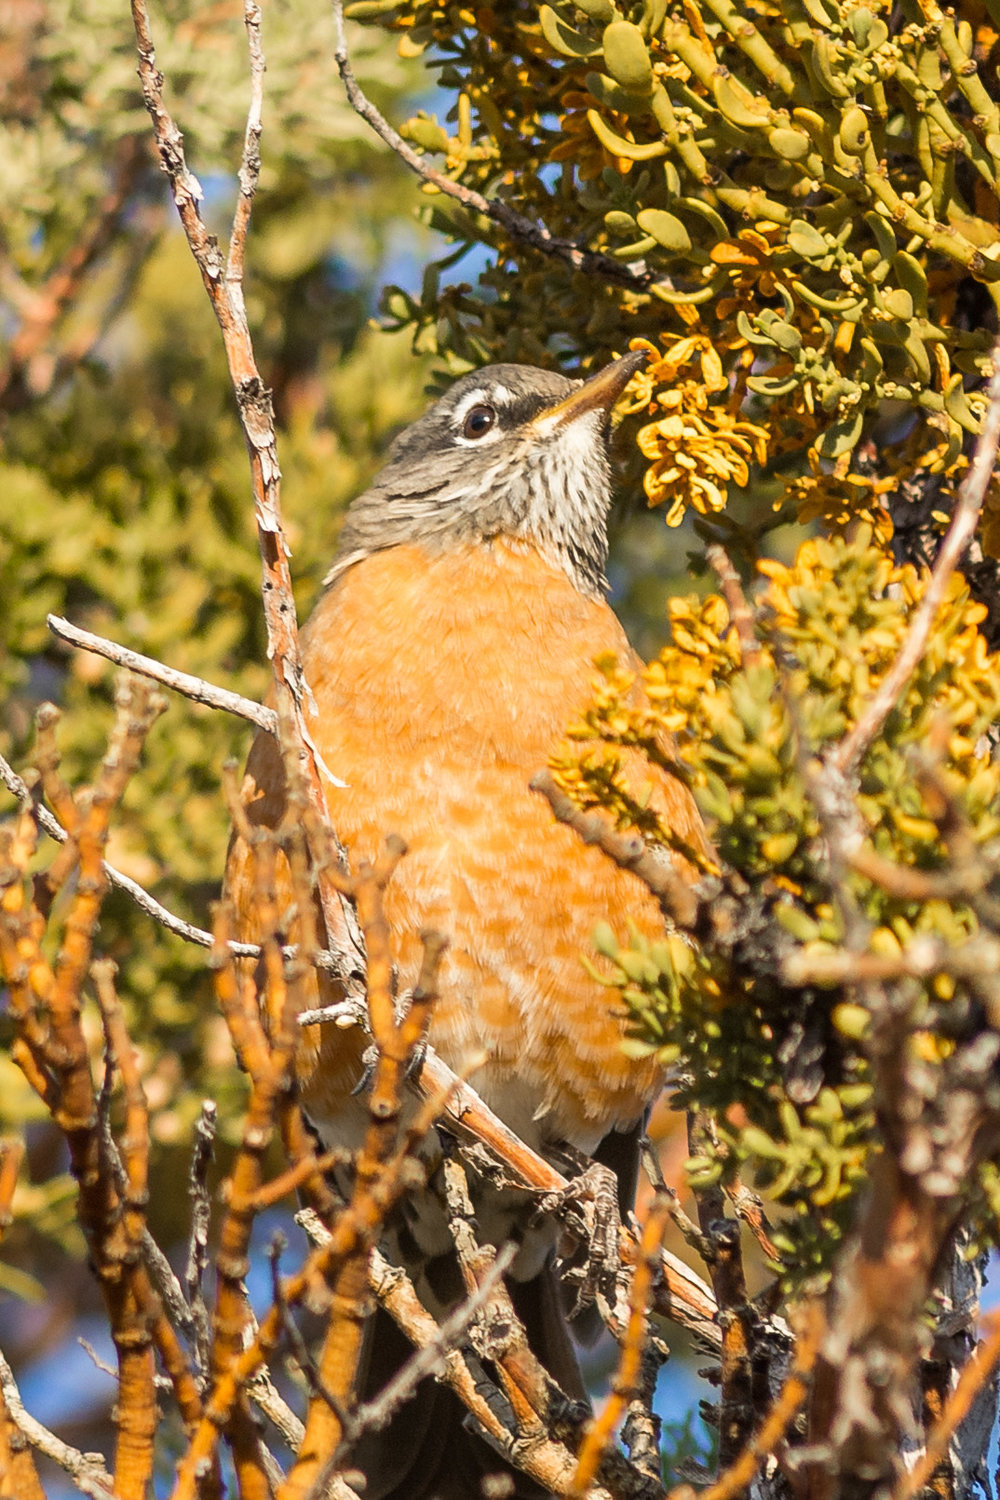 American Robin (Turdus migratorius) - Lava Beds NM, Siskiyou Co. (CA)  EQ: D7200, 300mm f/2.8   Taken: 10-2-2016 at 7:48   Settings: 450 mm (35mm eqiv), 1/1000s, f/3.5, ISO250, +1/3EV         Conditions: Sunny